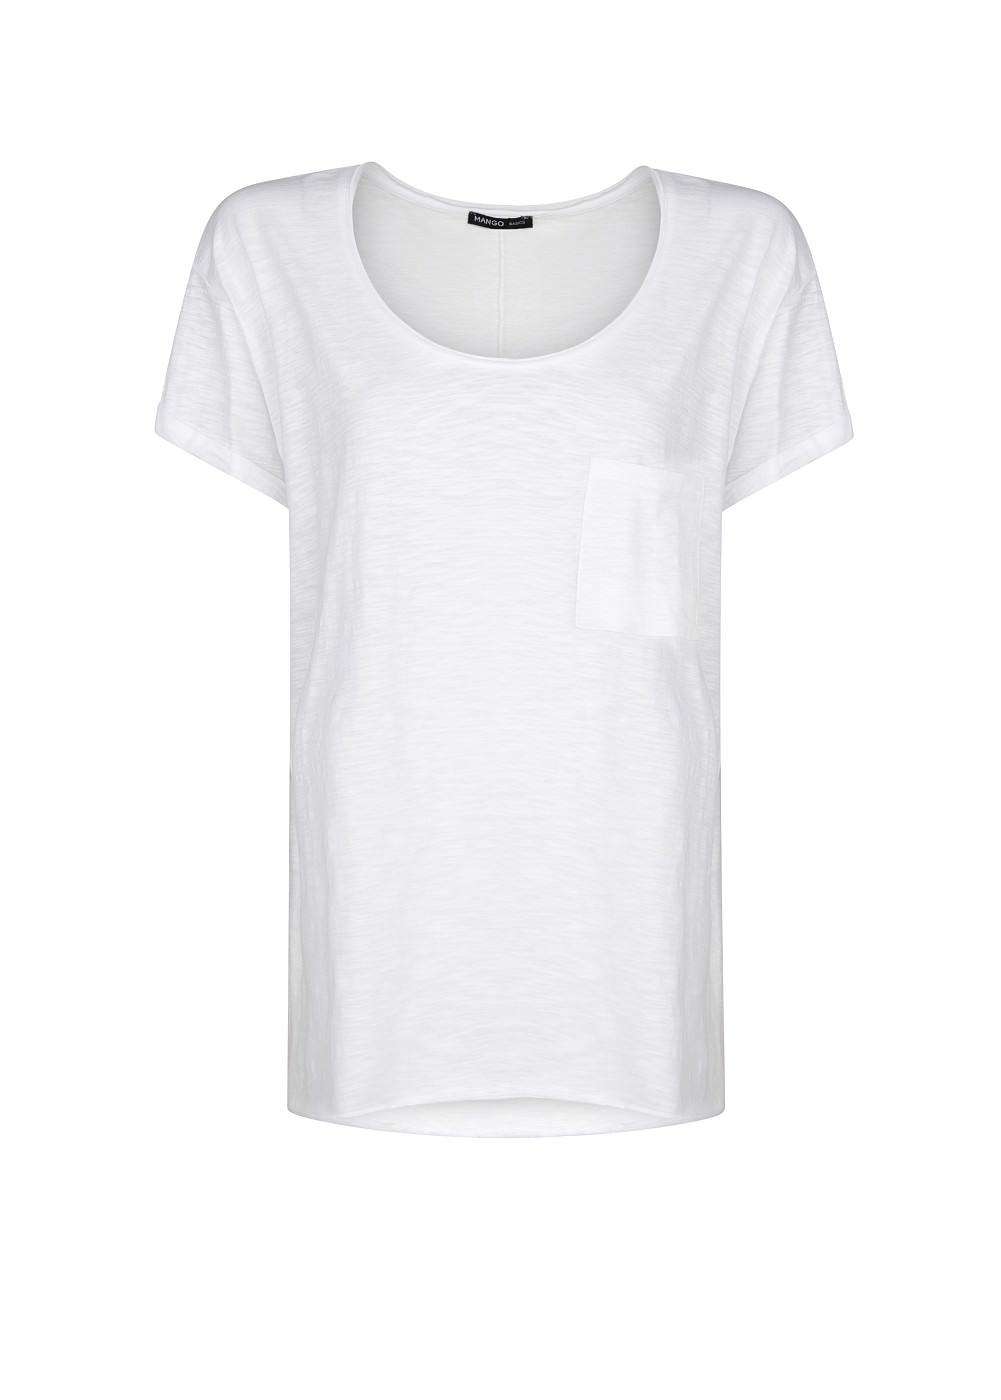 Slub-cotton t-shirt -  							T-shirts and tops - 							Women - 							MANGO